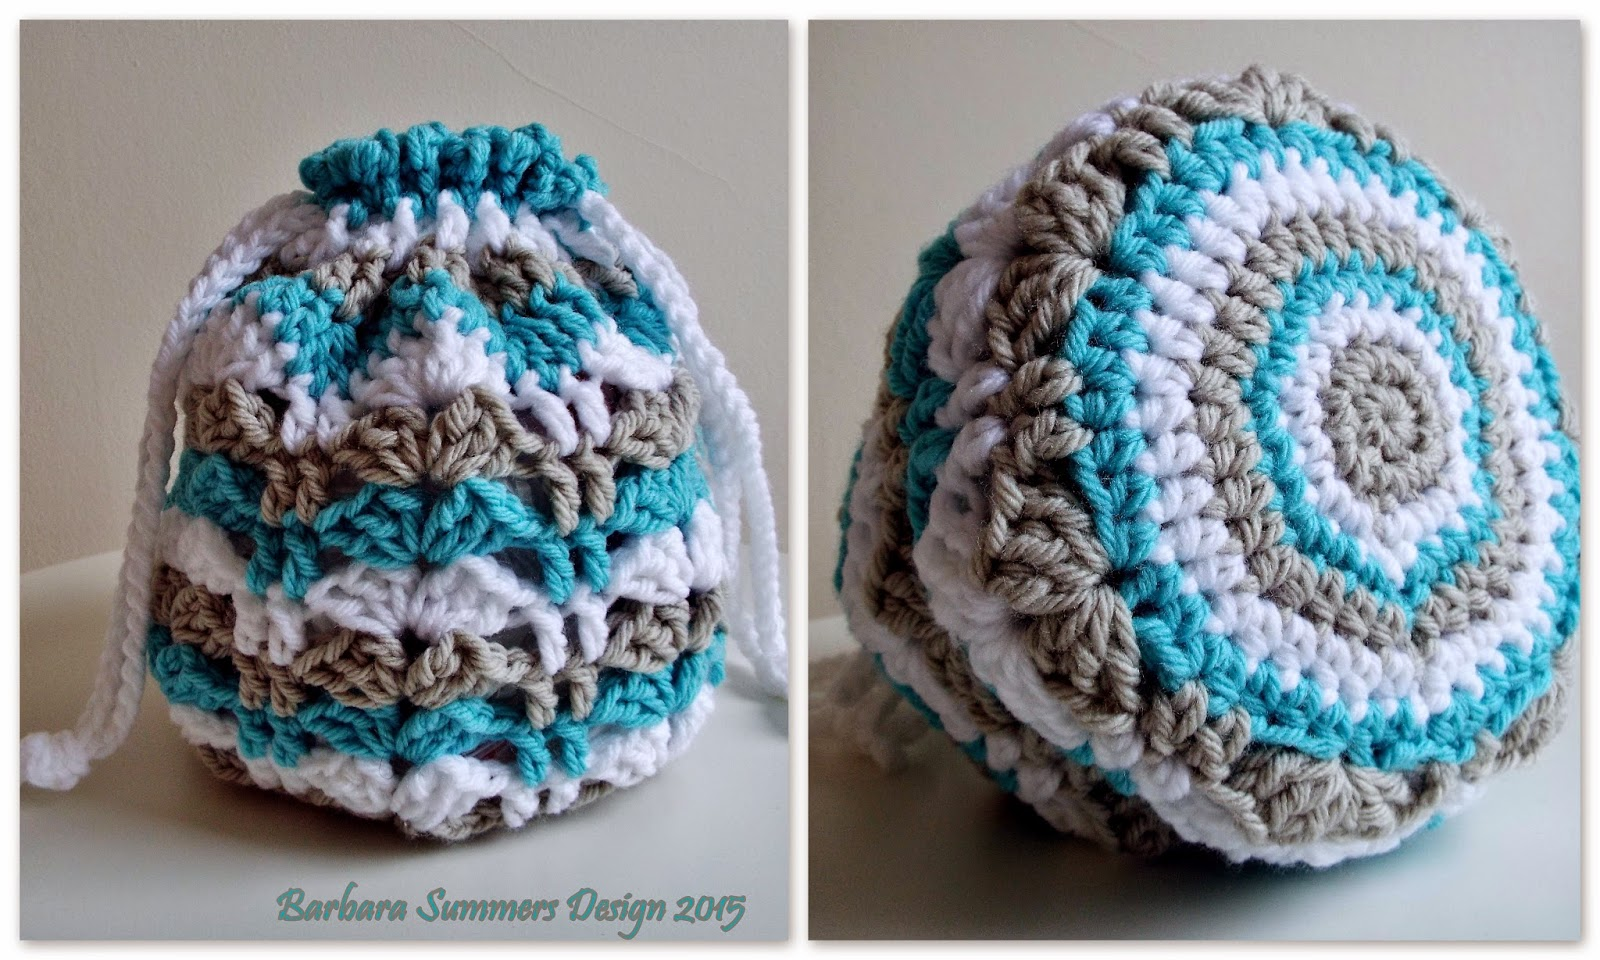 Free Crochet Bag : ... bag, fans, posts, how to crochet fans, how to crochet posts, free